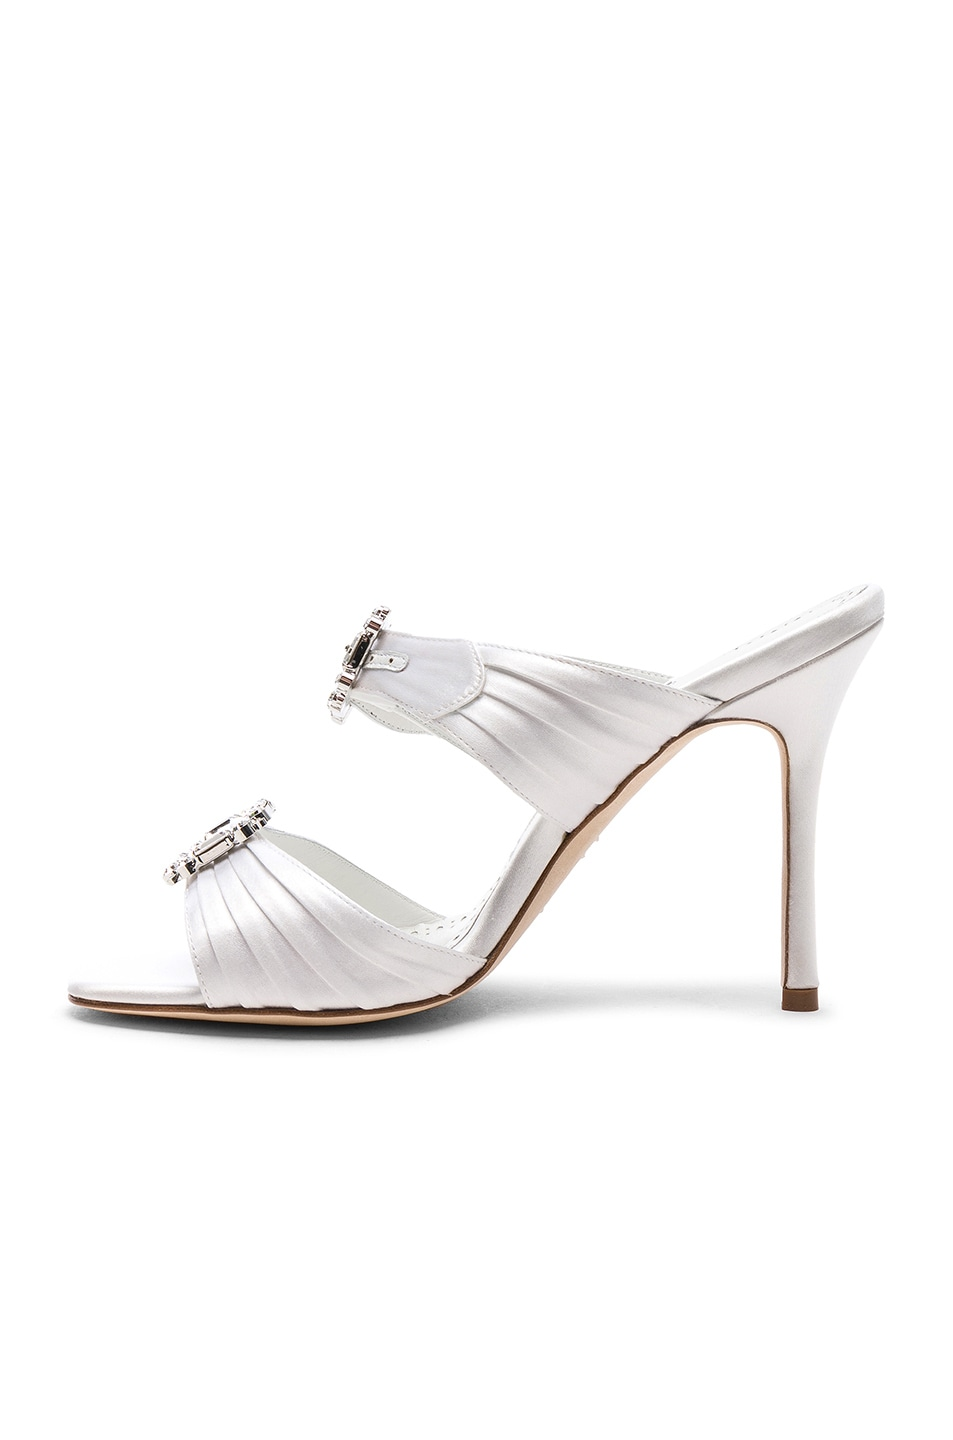 Image 5 of Manolo Blahnik Satin Pow 105 Sandals in White